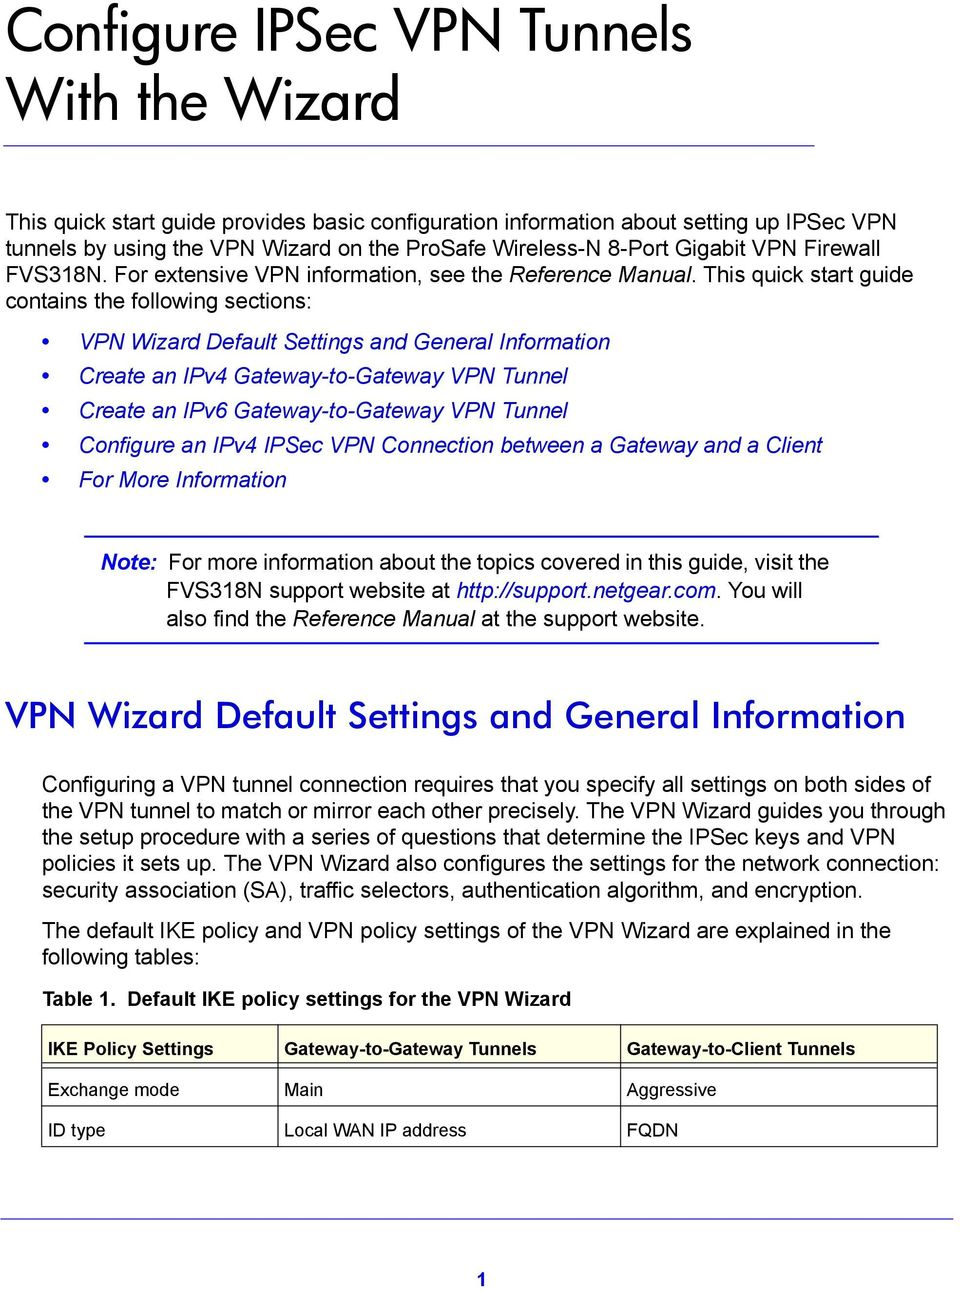 This quick start guide contains the following sections: VPN Wizard Default Settings and General Information Create an IPv4 Gateway-to-Gateway VPN Tunnel Create an IPv6 Gateway-to-Gateway VPN Tunnel